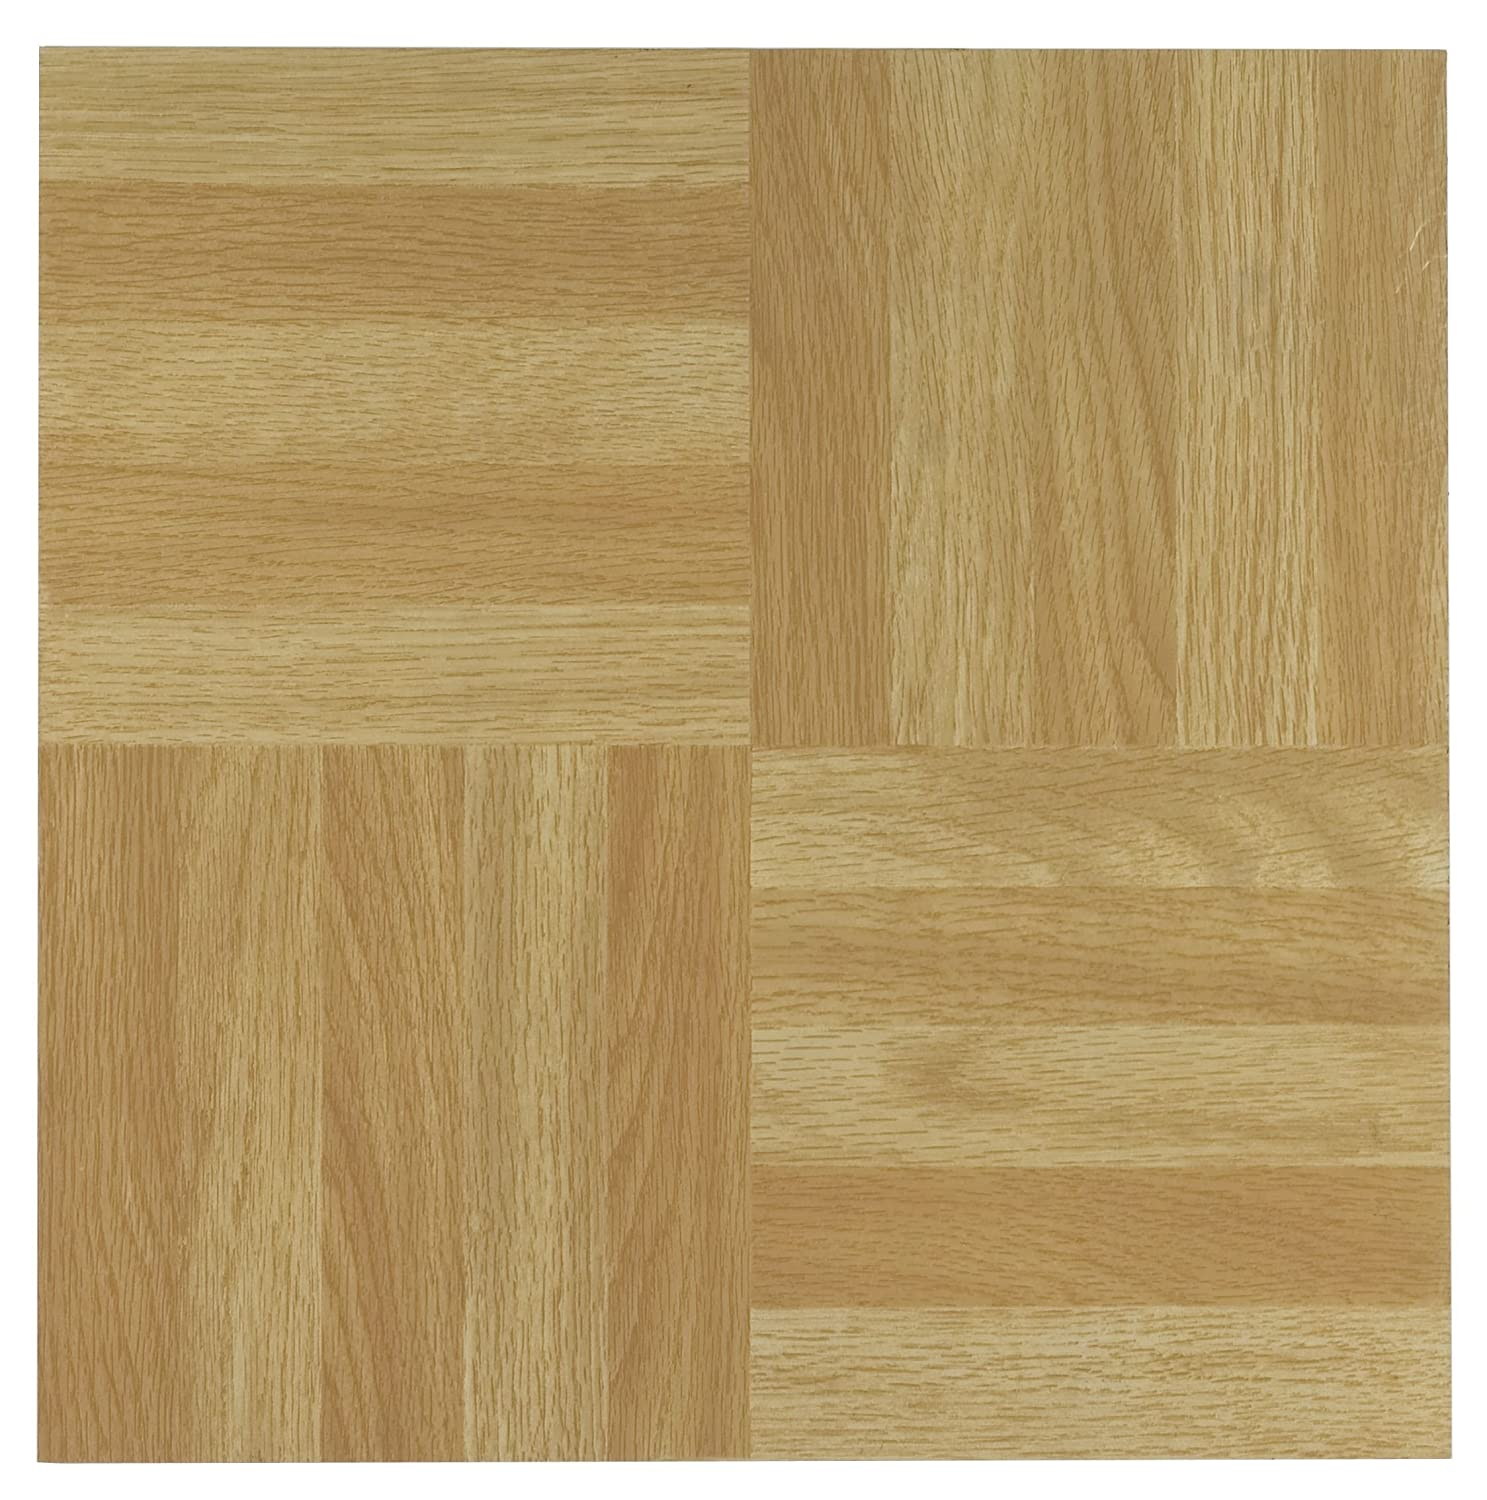 Achim home furnishings ftvwd20420 nexus 12 inch vinyl tile wood achim home furnishings ftvwd20420 nexus 12 inch vinyl tile wood four finger square parquet 20 pack vinyl floor coverings amazon dailygadgetfo Choice Image